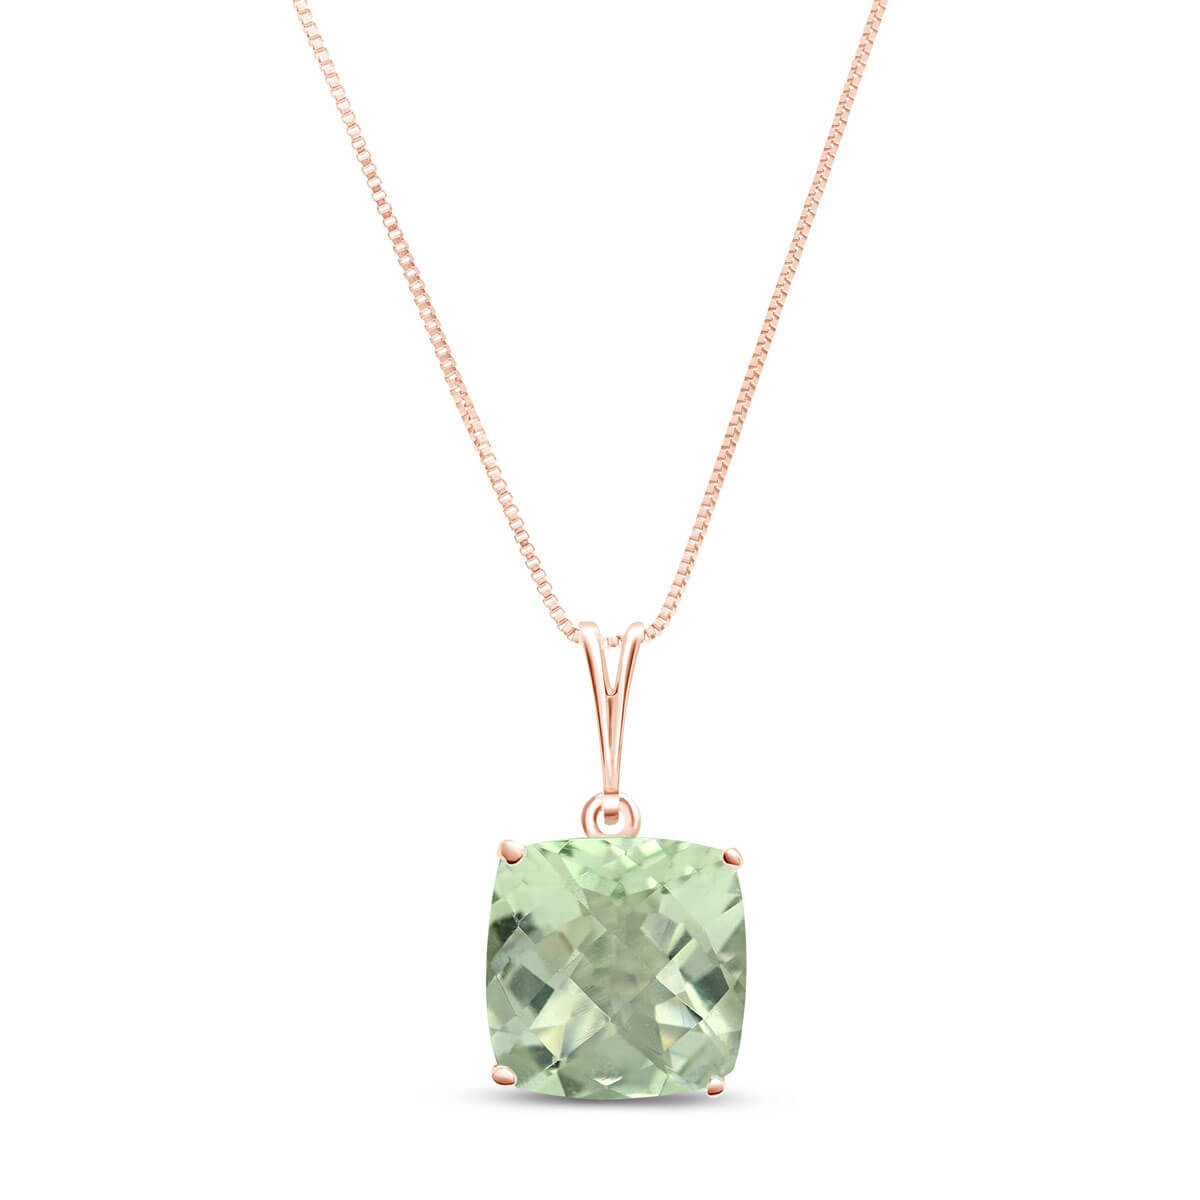 Green Amethyst Rococo Pendant Necklace 3.6 ct in 9ct Rose Gold